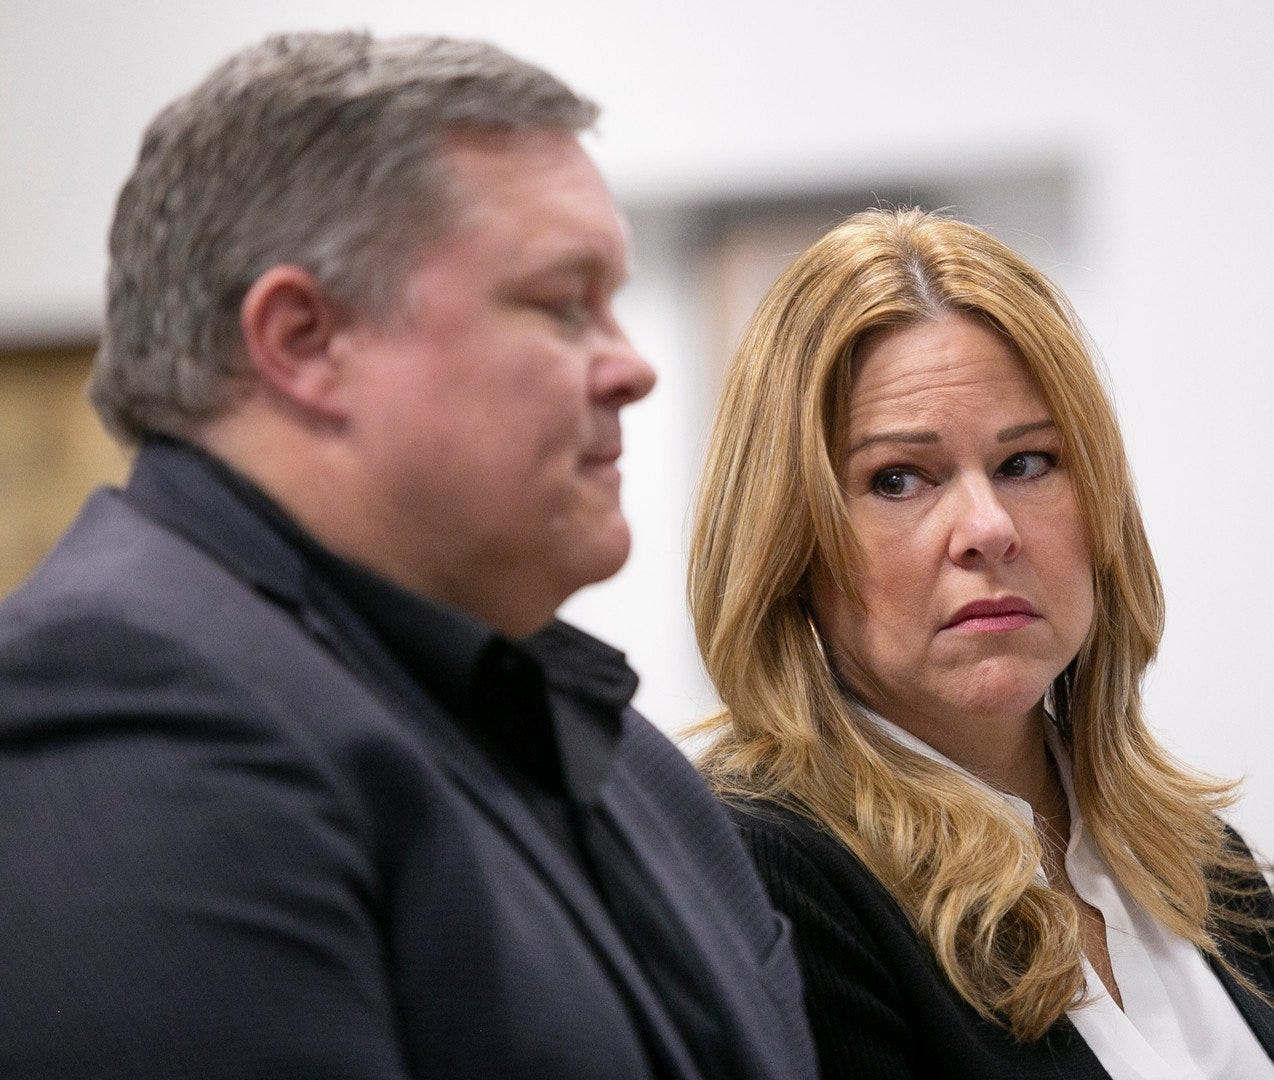 Wade and Kathleen Wiant make a statement to Judge George P. McCarthy after a guilty plea from former Ohio University student and Sigma Pi Fraternity member, Cullen McLaughlin,   at the Athens County Court of Common Pleas in Athens, Ohio on Thursday, Feb. 27, 2020.